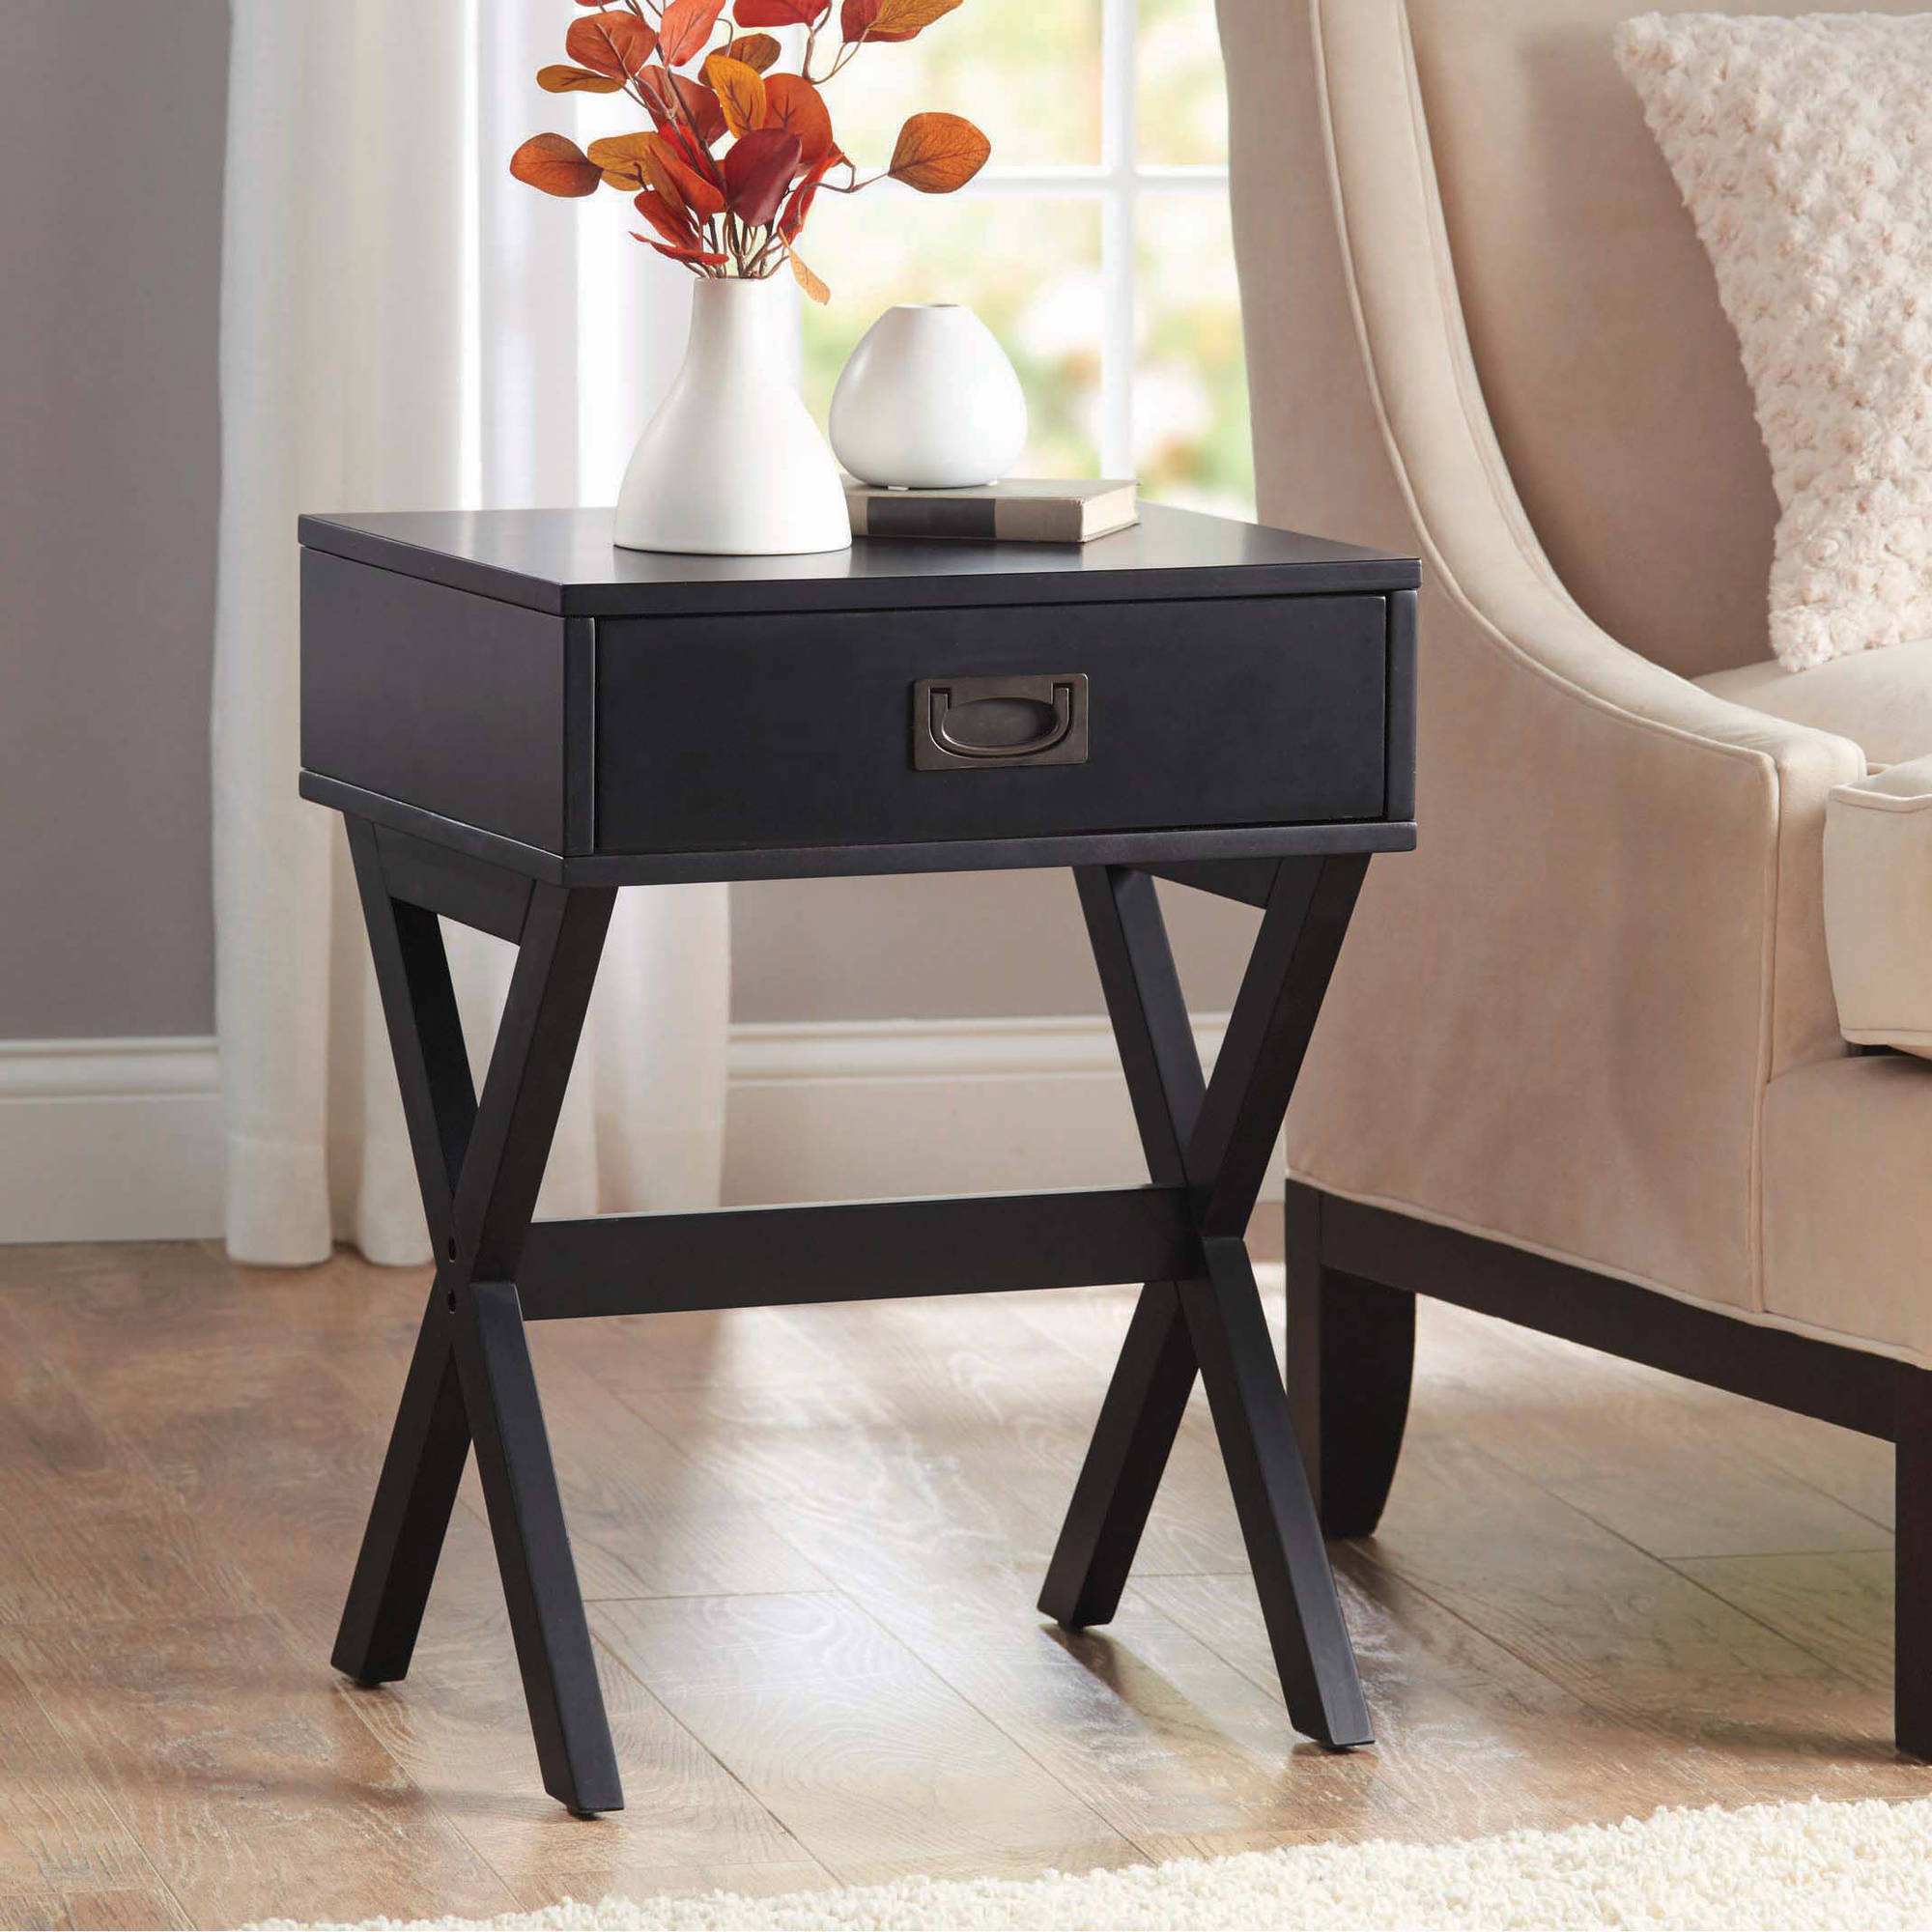 better homes gardens leg accent table with drawer multiple nightstand colors runner for round upcycled coffee inexpensive console target bar stools ashley furniture website two